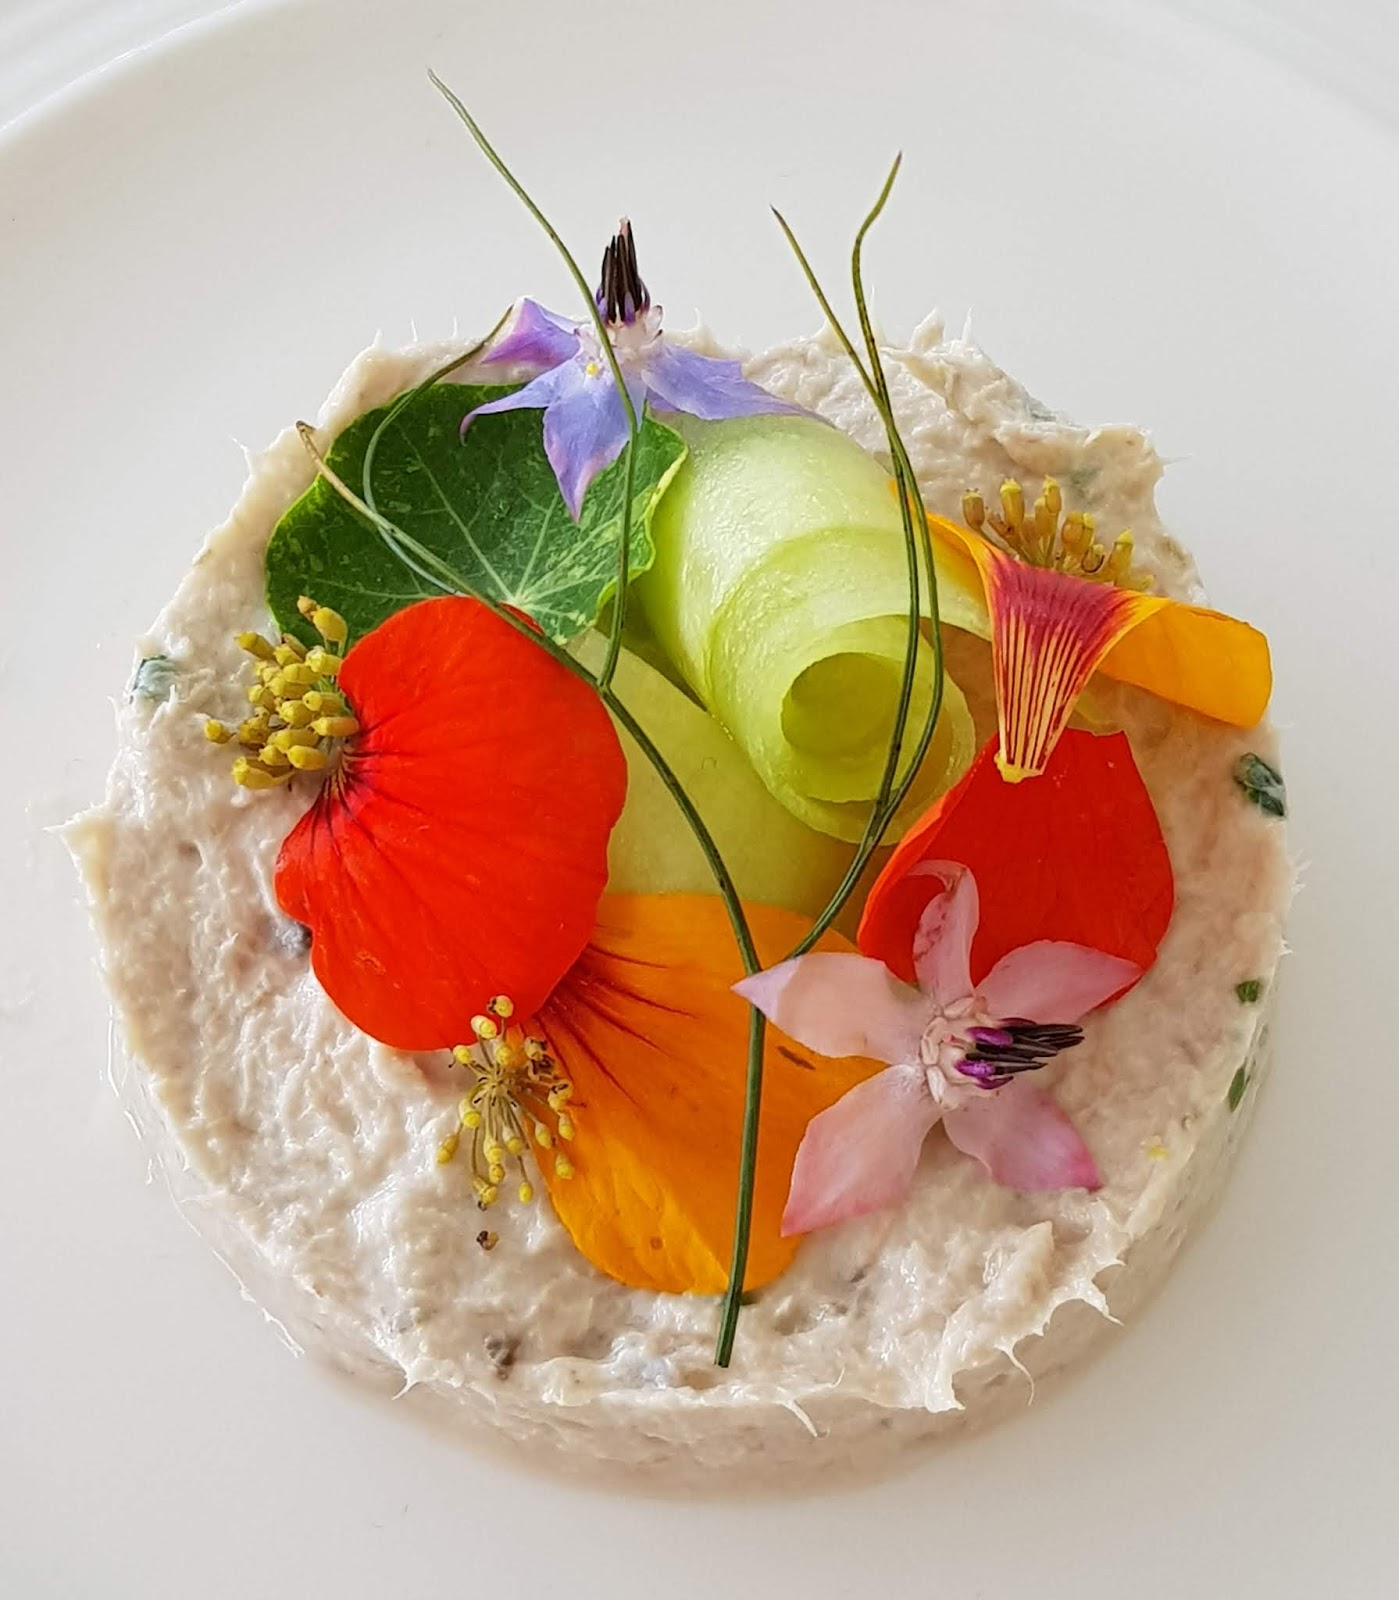 Starter of mackeral pate with flowers from the Horn of Plenty, Devon